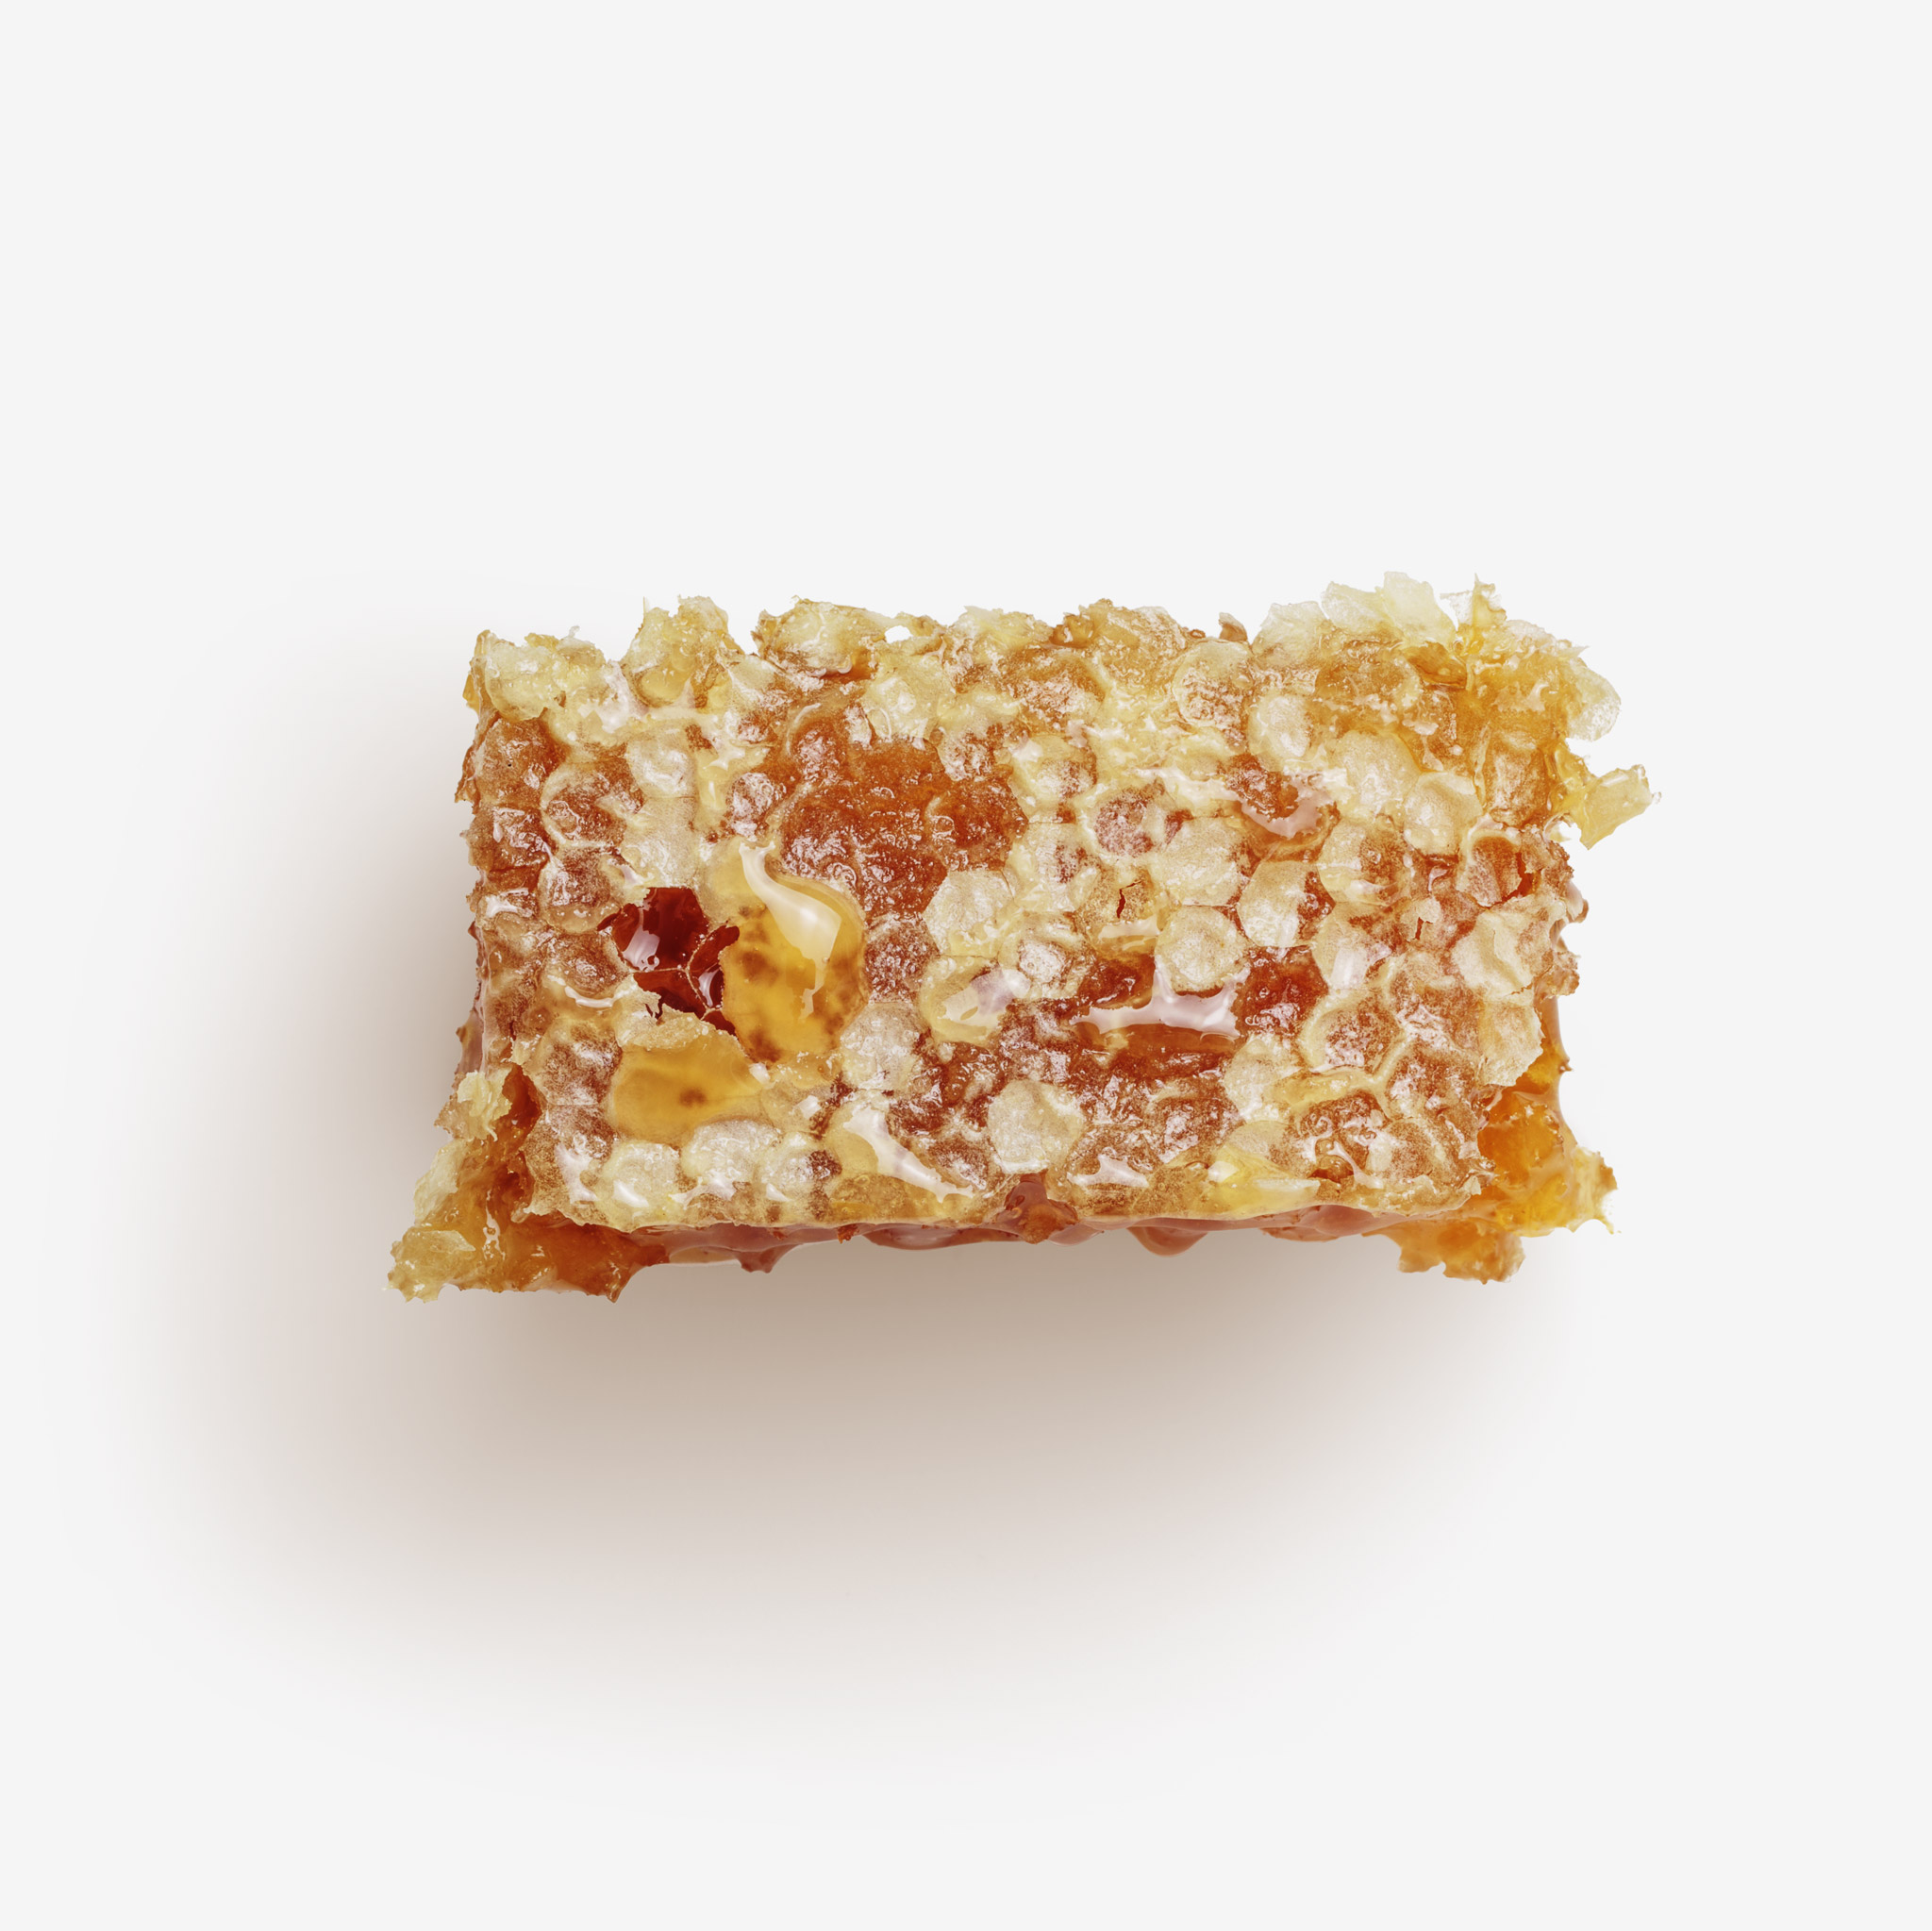 Honey image asset with transparent background